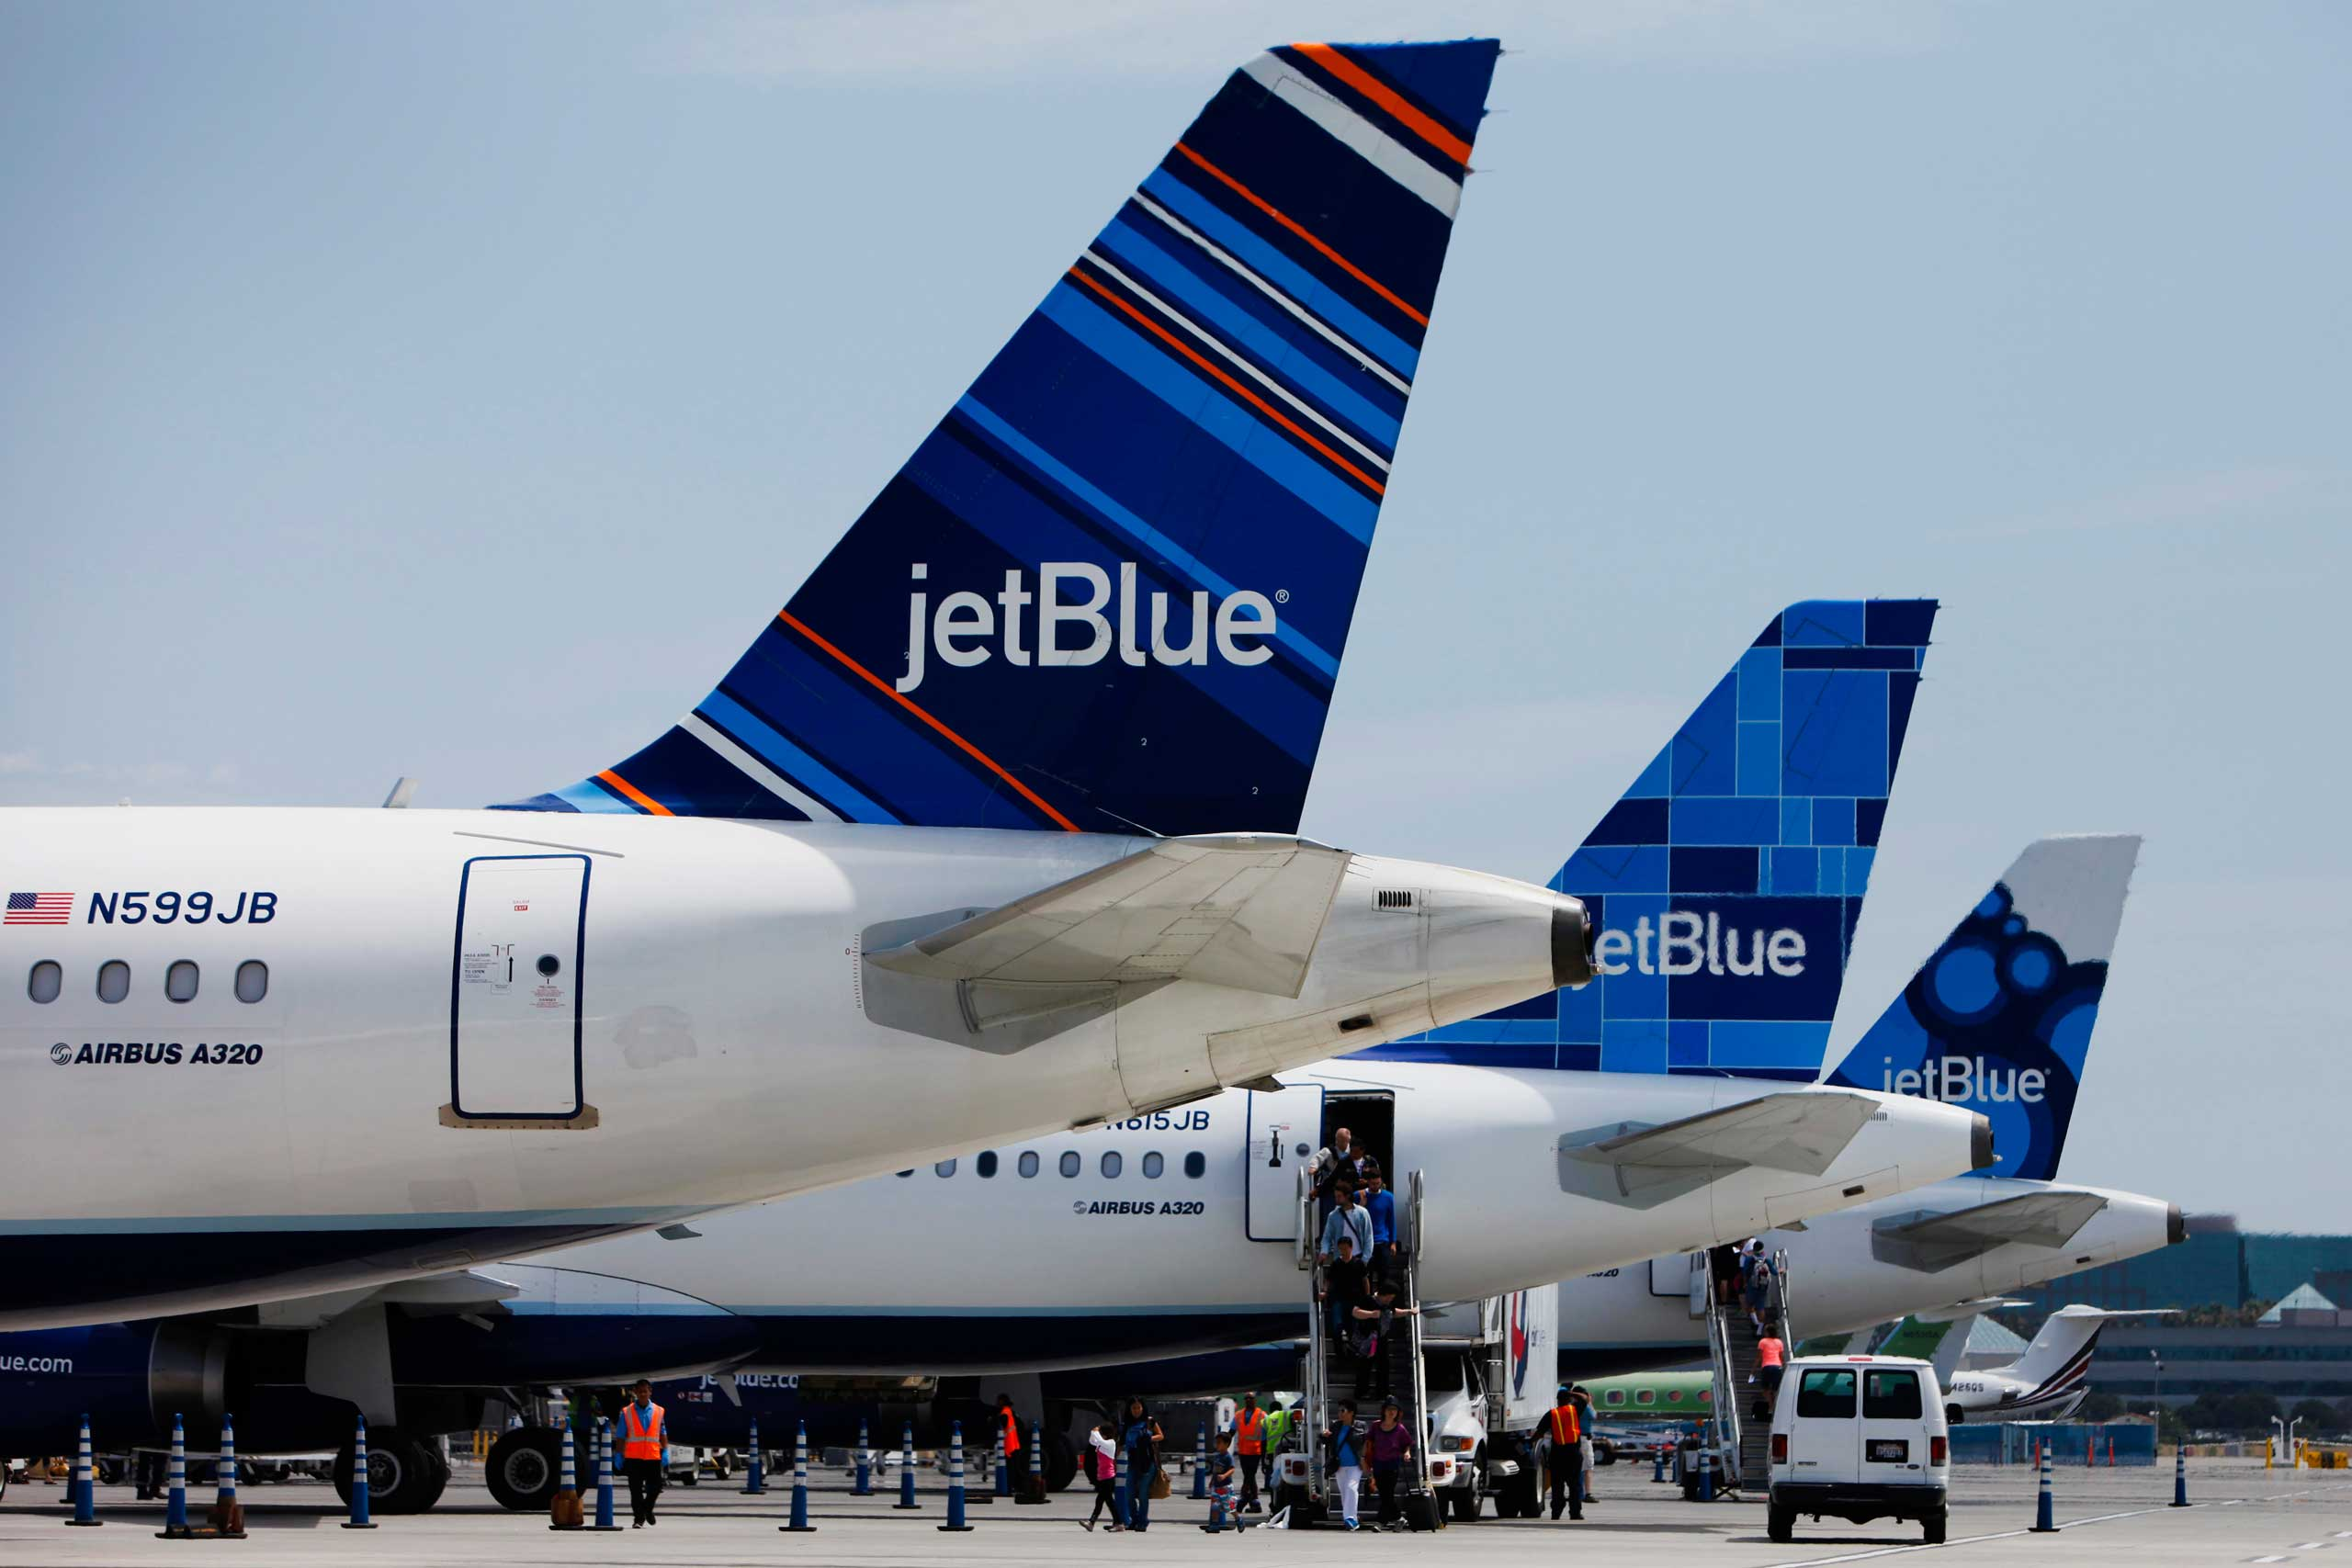 Passengers exit a JetBlue Airways Corp. plane at Long Beach Airport (LGB) in Long Beach, California, U.S., on Monday, July 22, 2013.